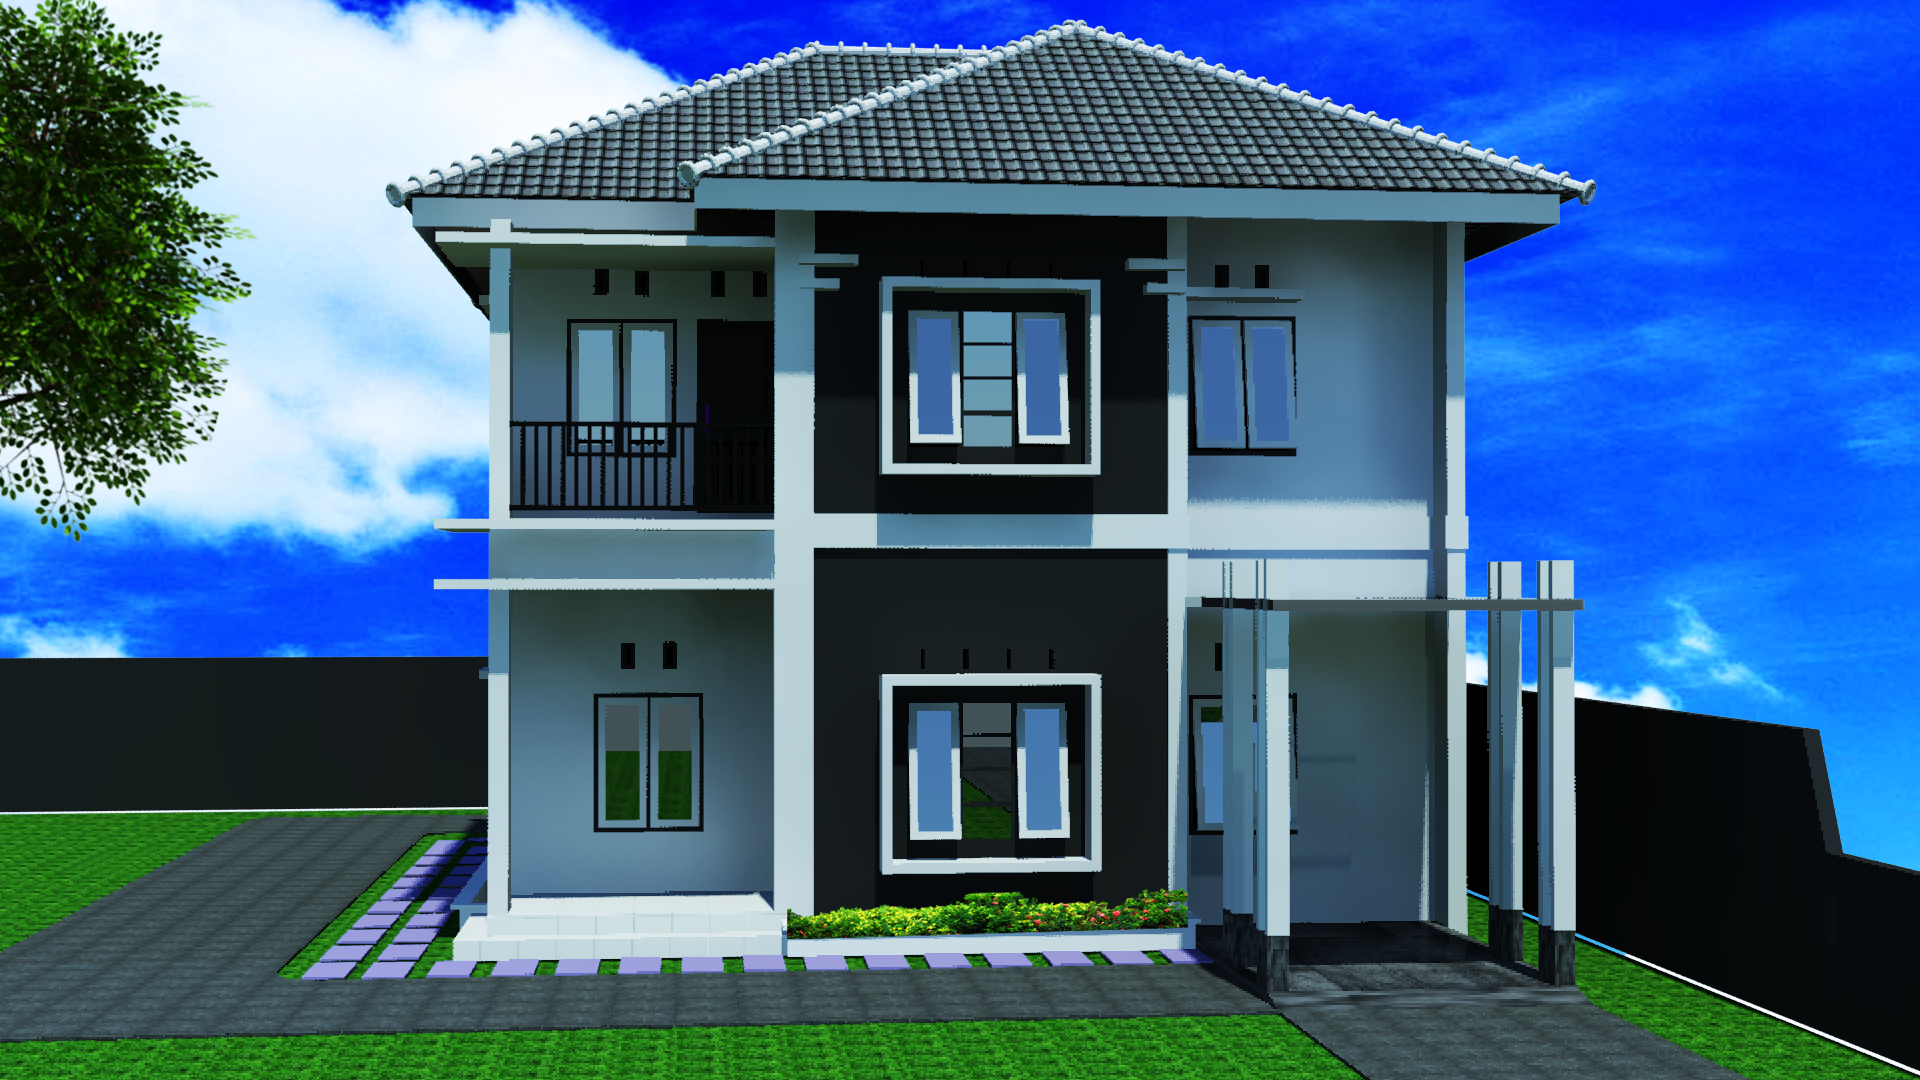 Minimalis Home 3D 2D 2nd floor example image 2